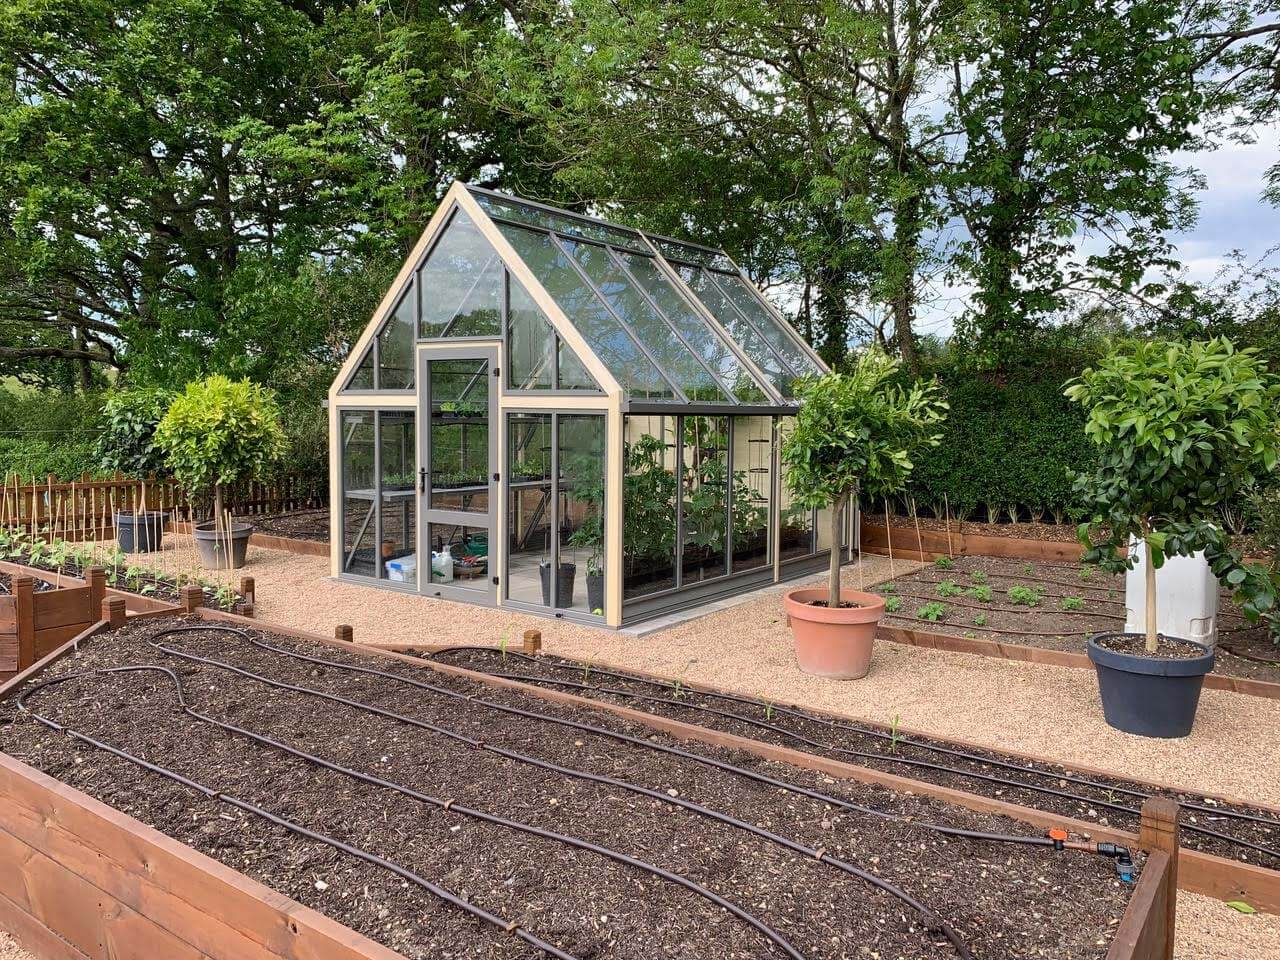 Greenhouse amongst raised beds